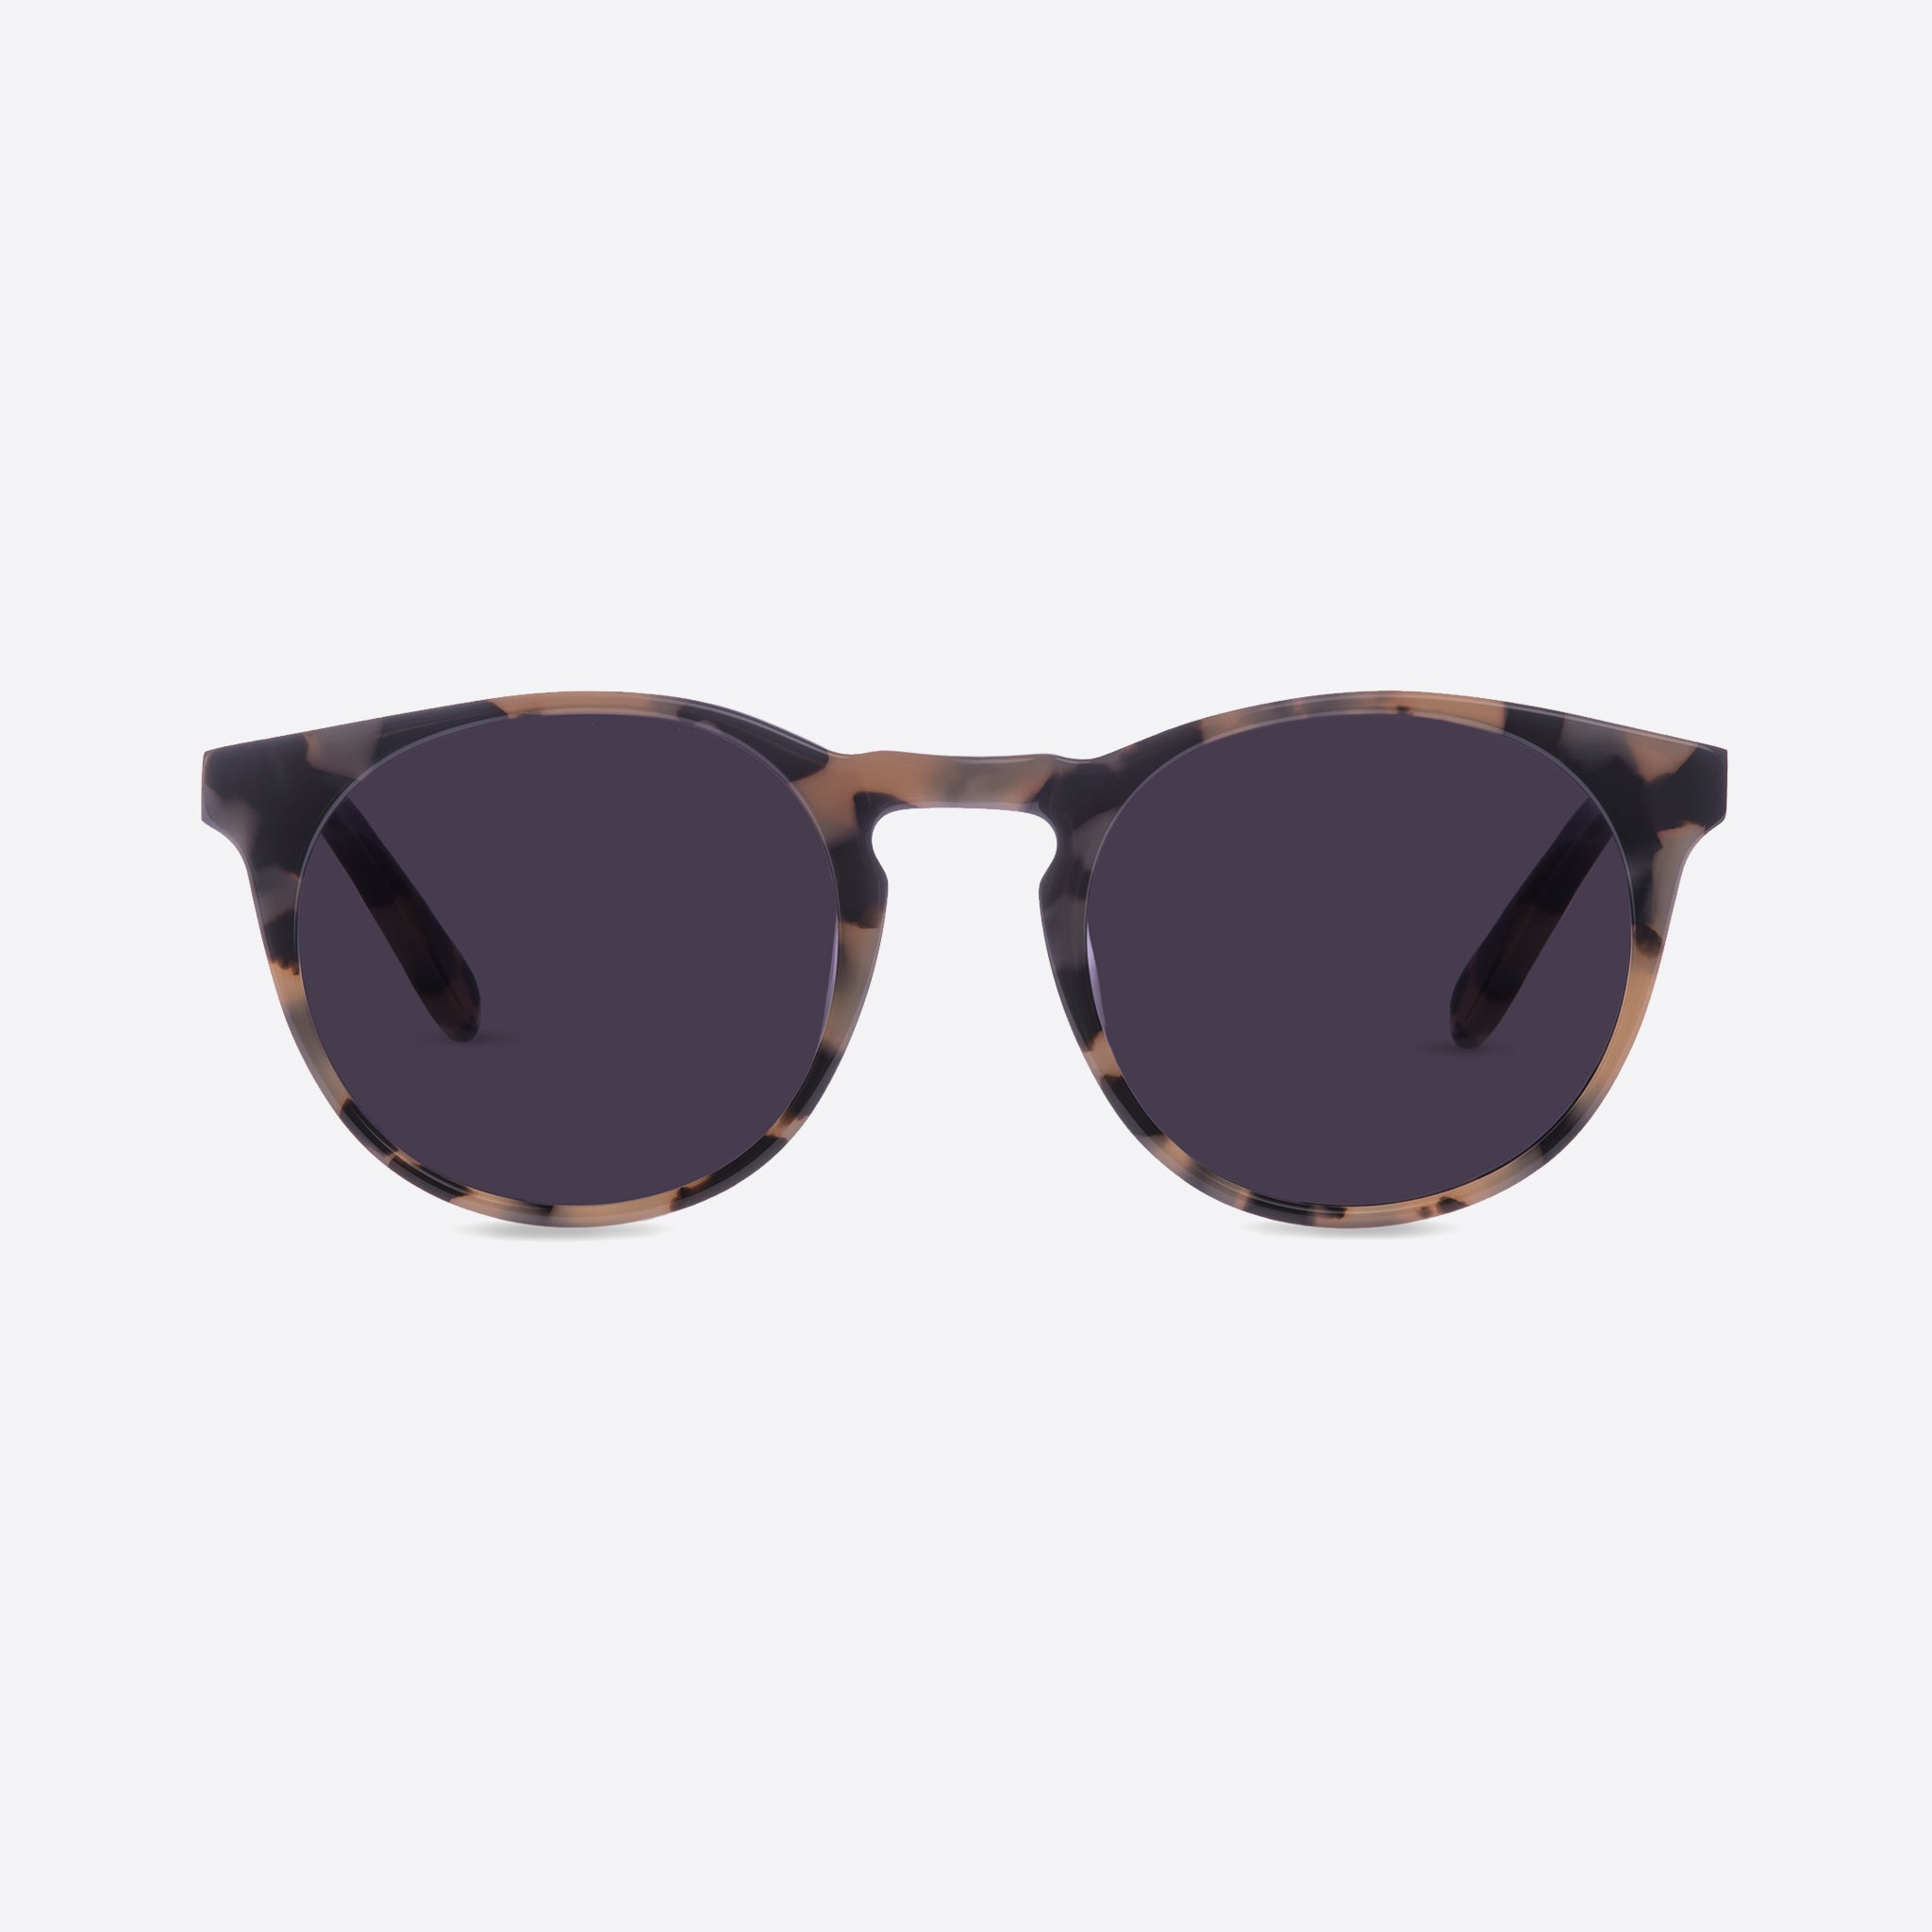 FINLAY London Percy in Stone Tortoise with Grey Lenses